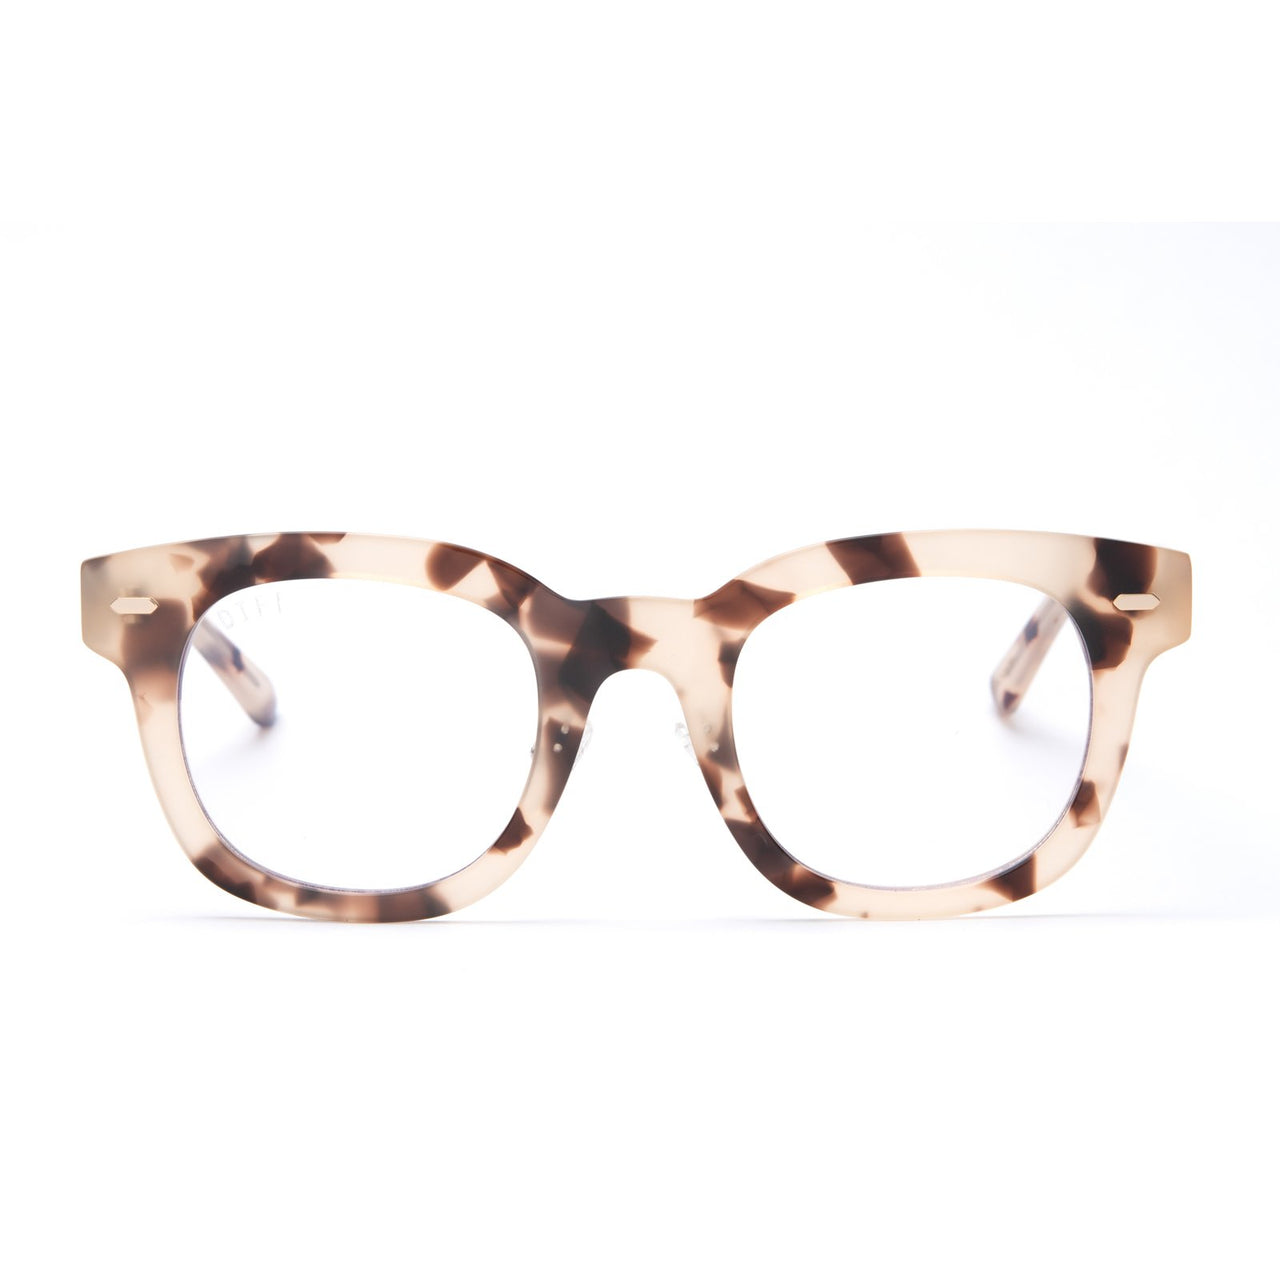 Summer prescription glasses with cream tortoise frames and clear lens front view